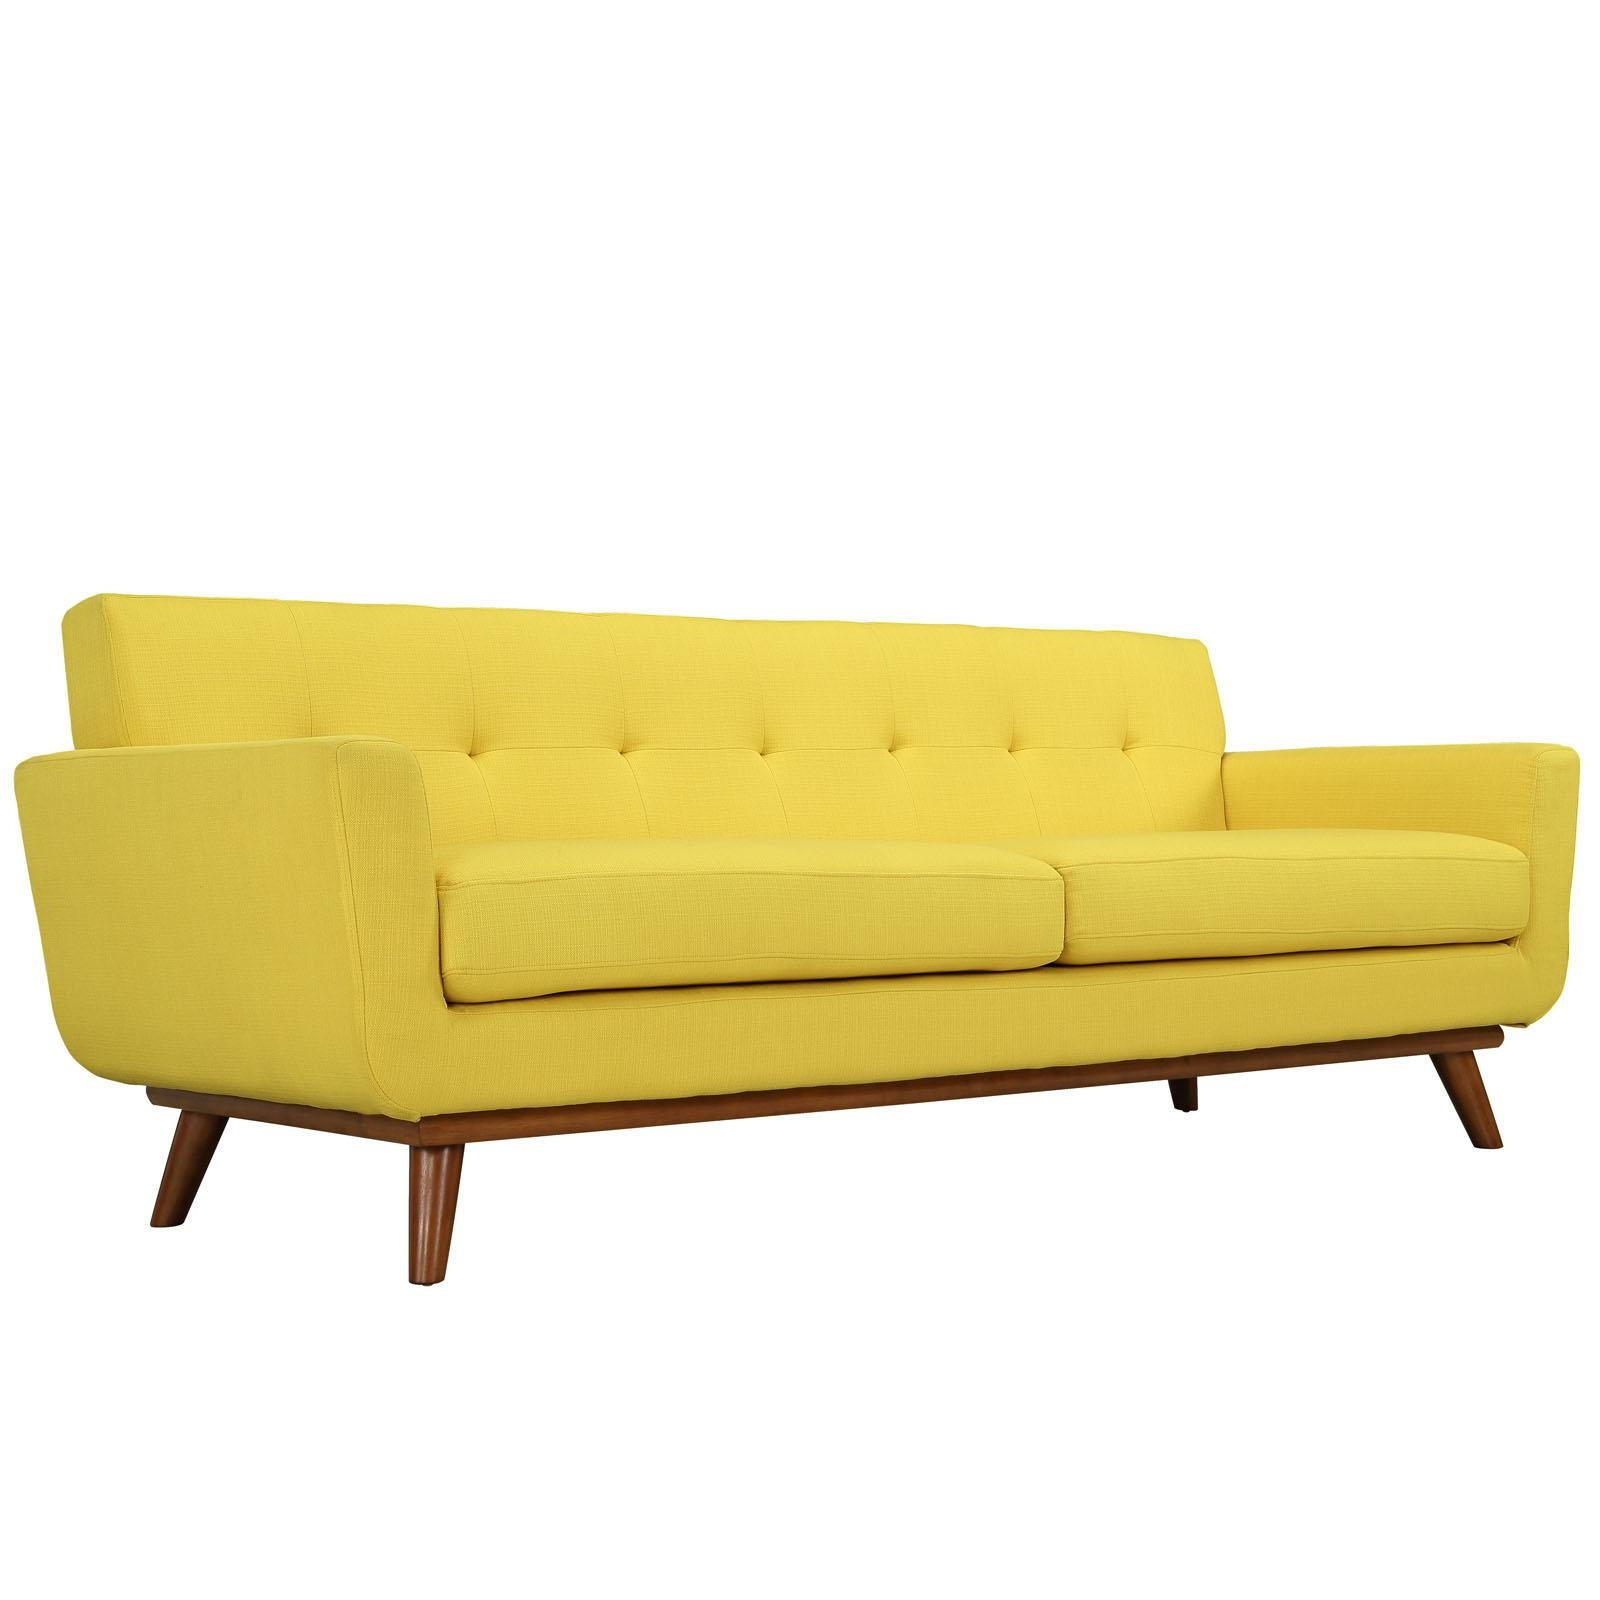 20 Photos Yellow Sofa Chairs Sofa Ideas